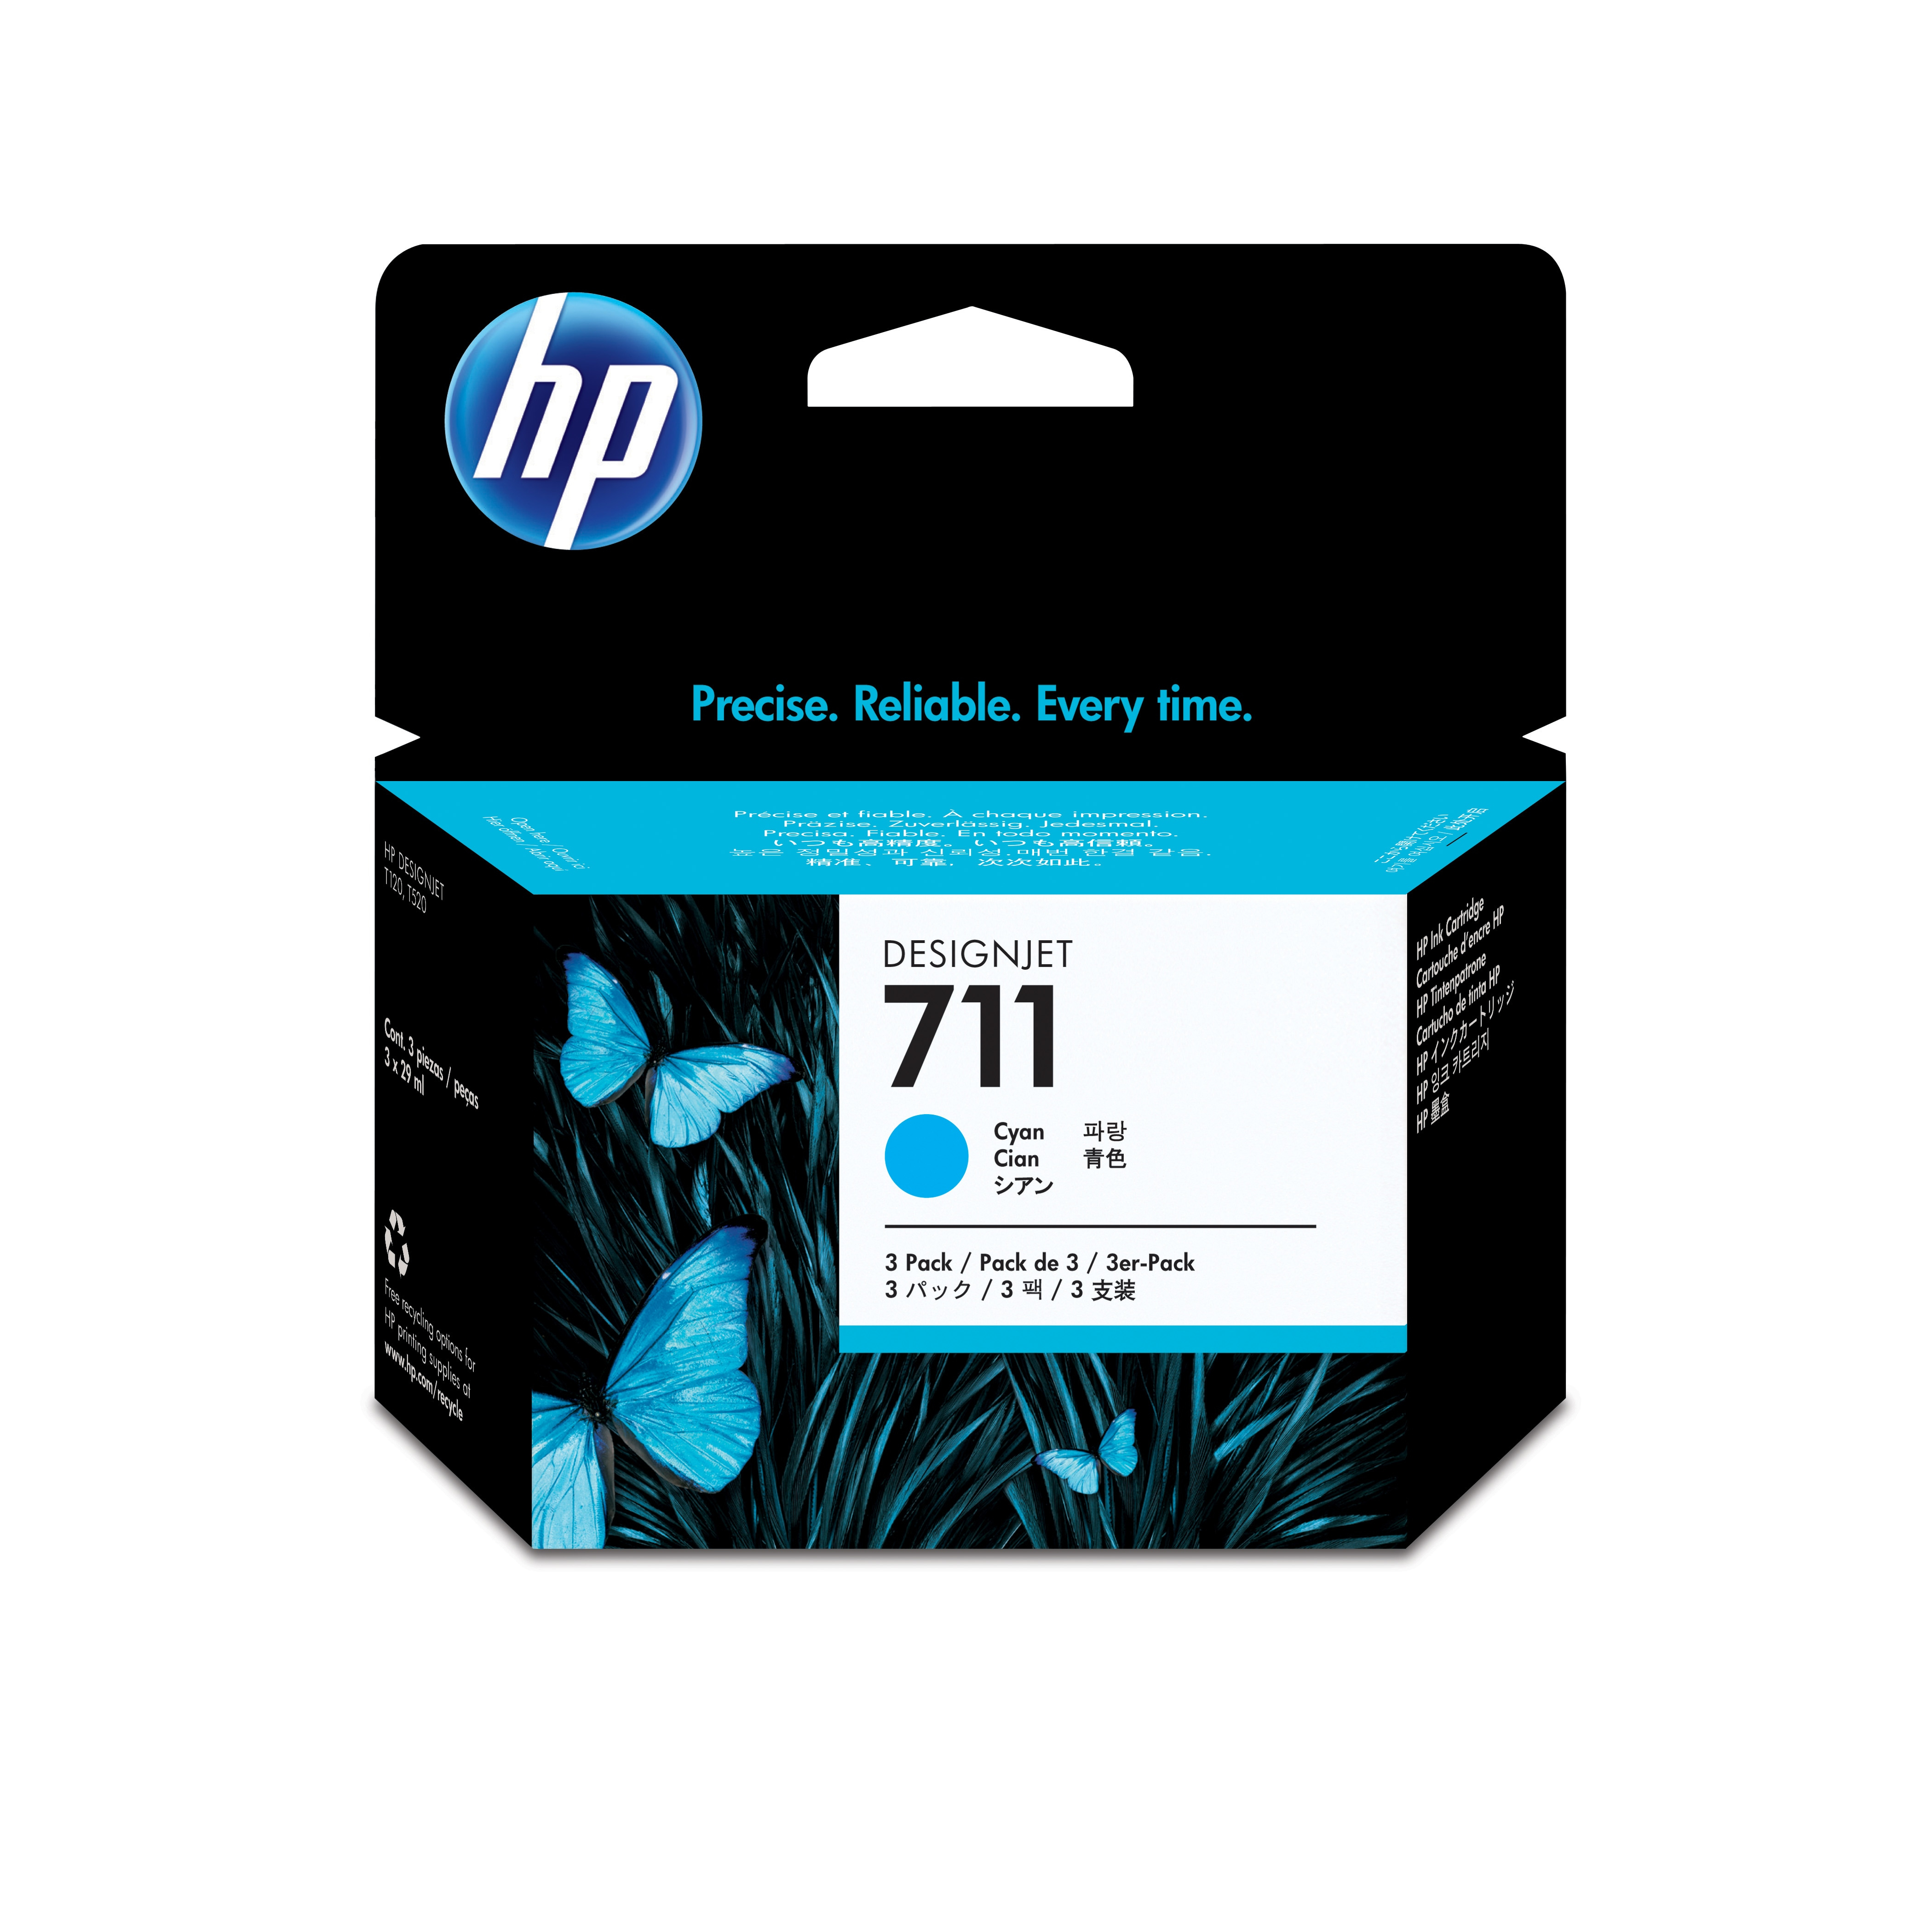 Hpcz134a       Hp 711 3 Pack 29ml Cyan        Ink Cartridge                                                - UF01